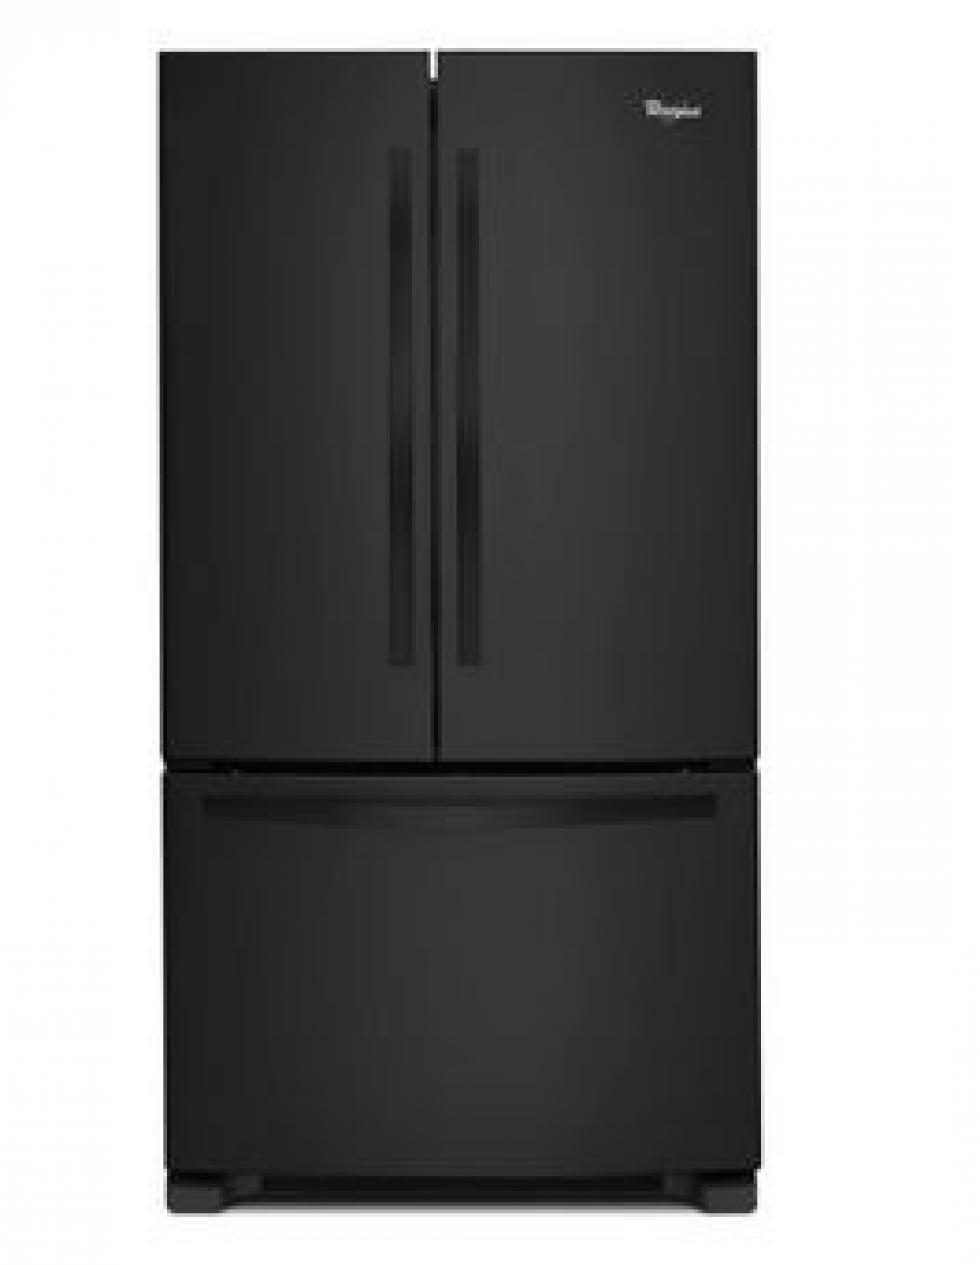 Whirlpool French Door Refrigerator Black